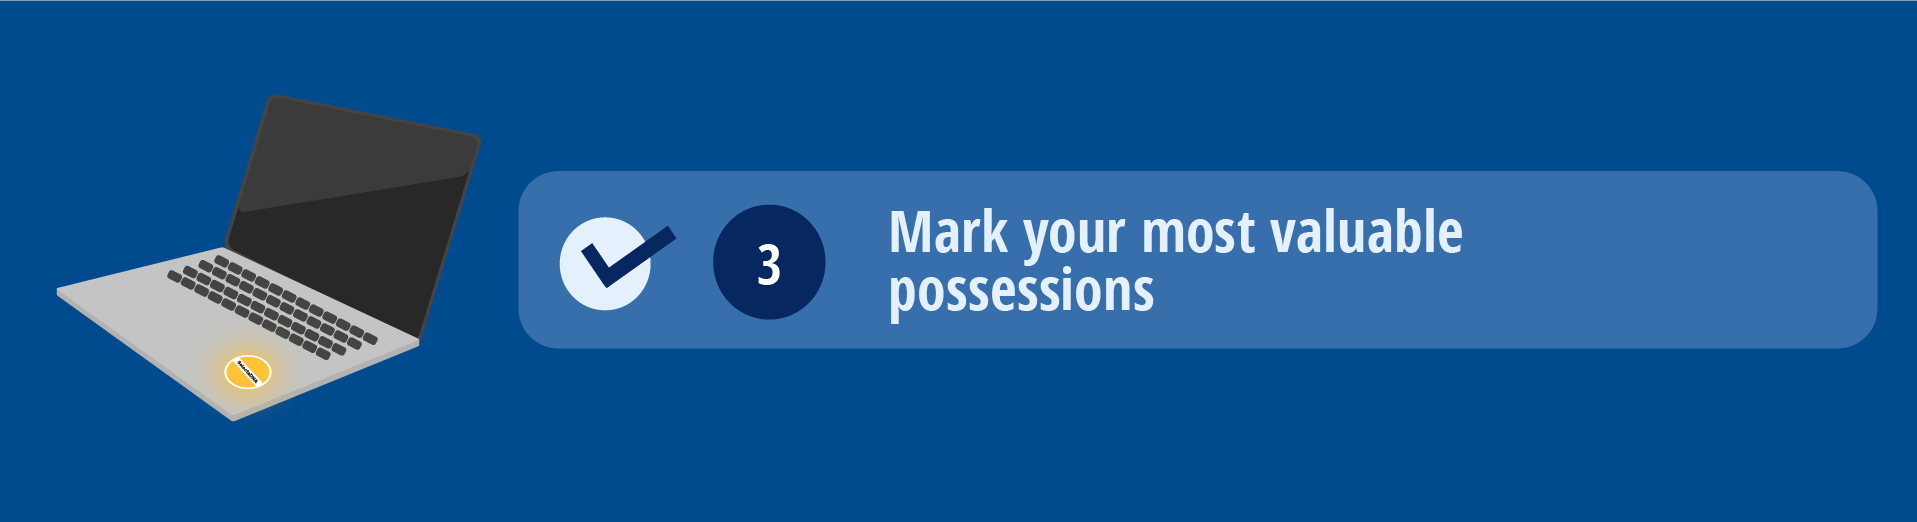 Mark your most valuable possessions